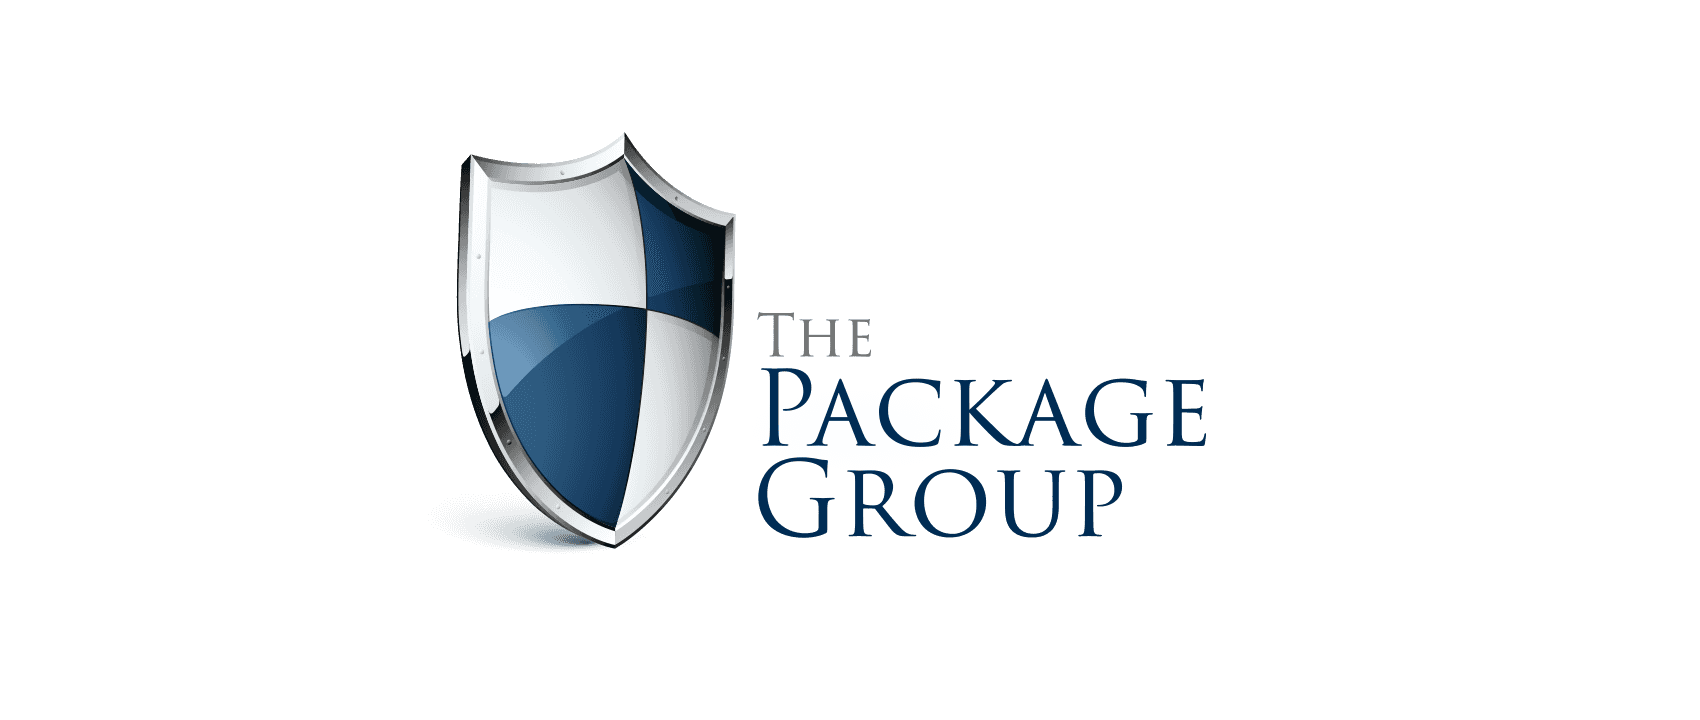 blue and white shield logo - The Package Group